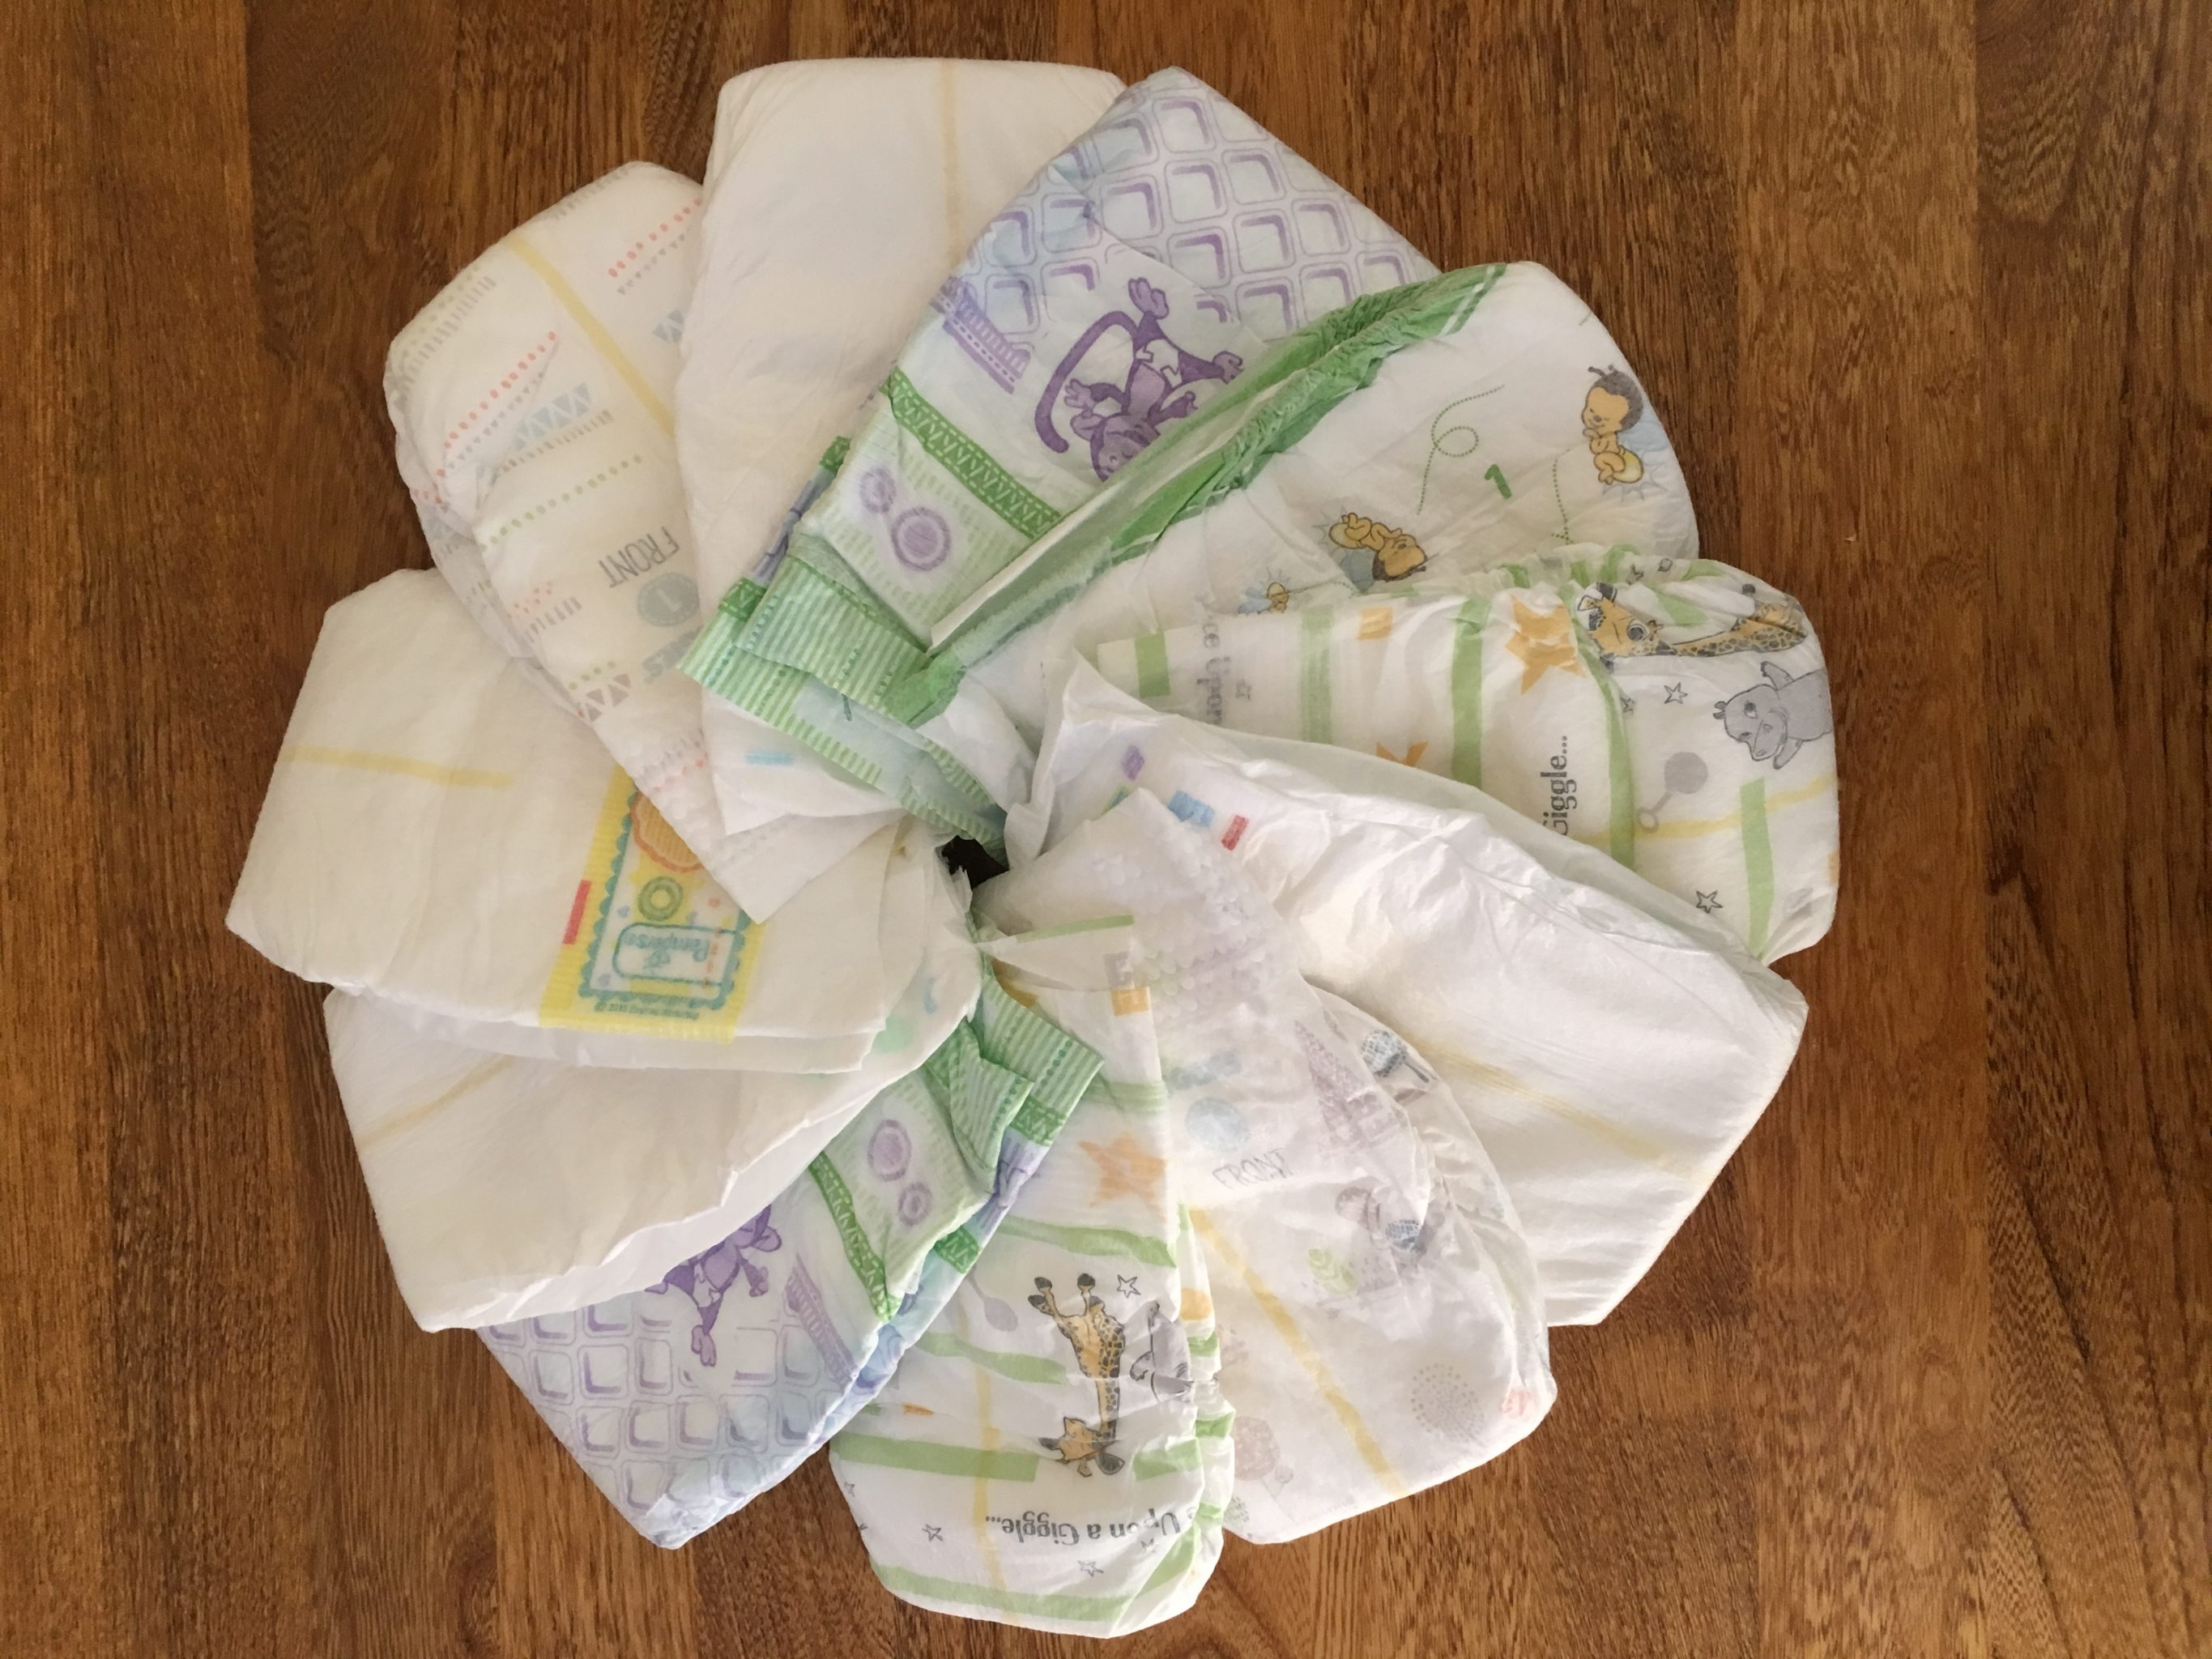 Comparing Baby Diapers